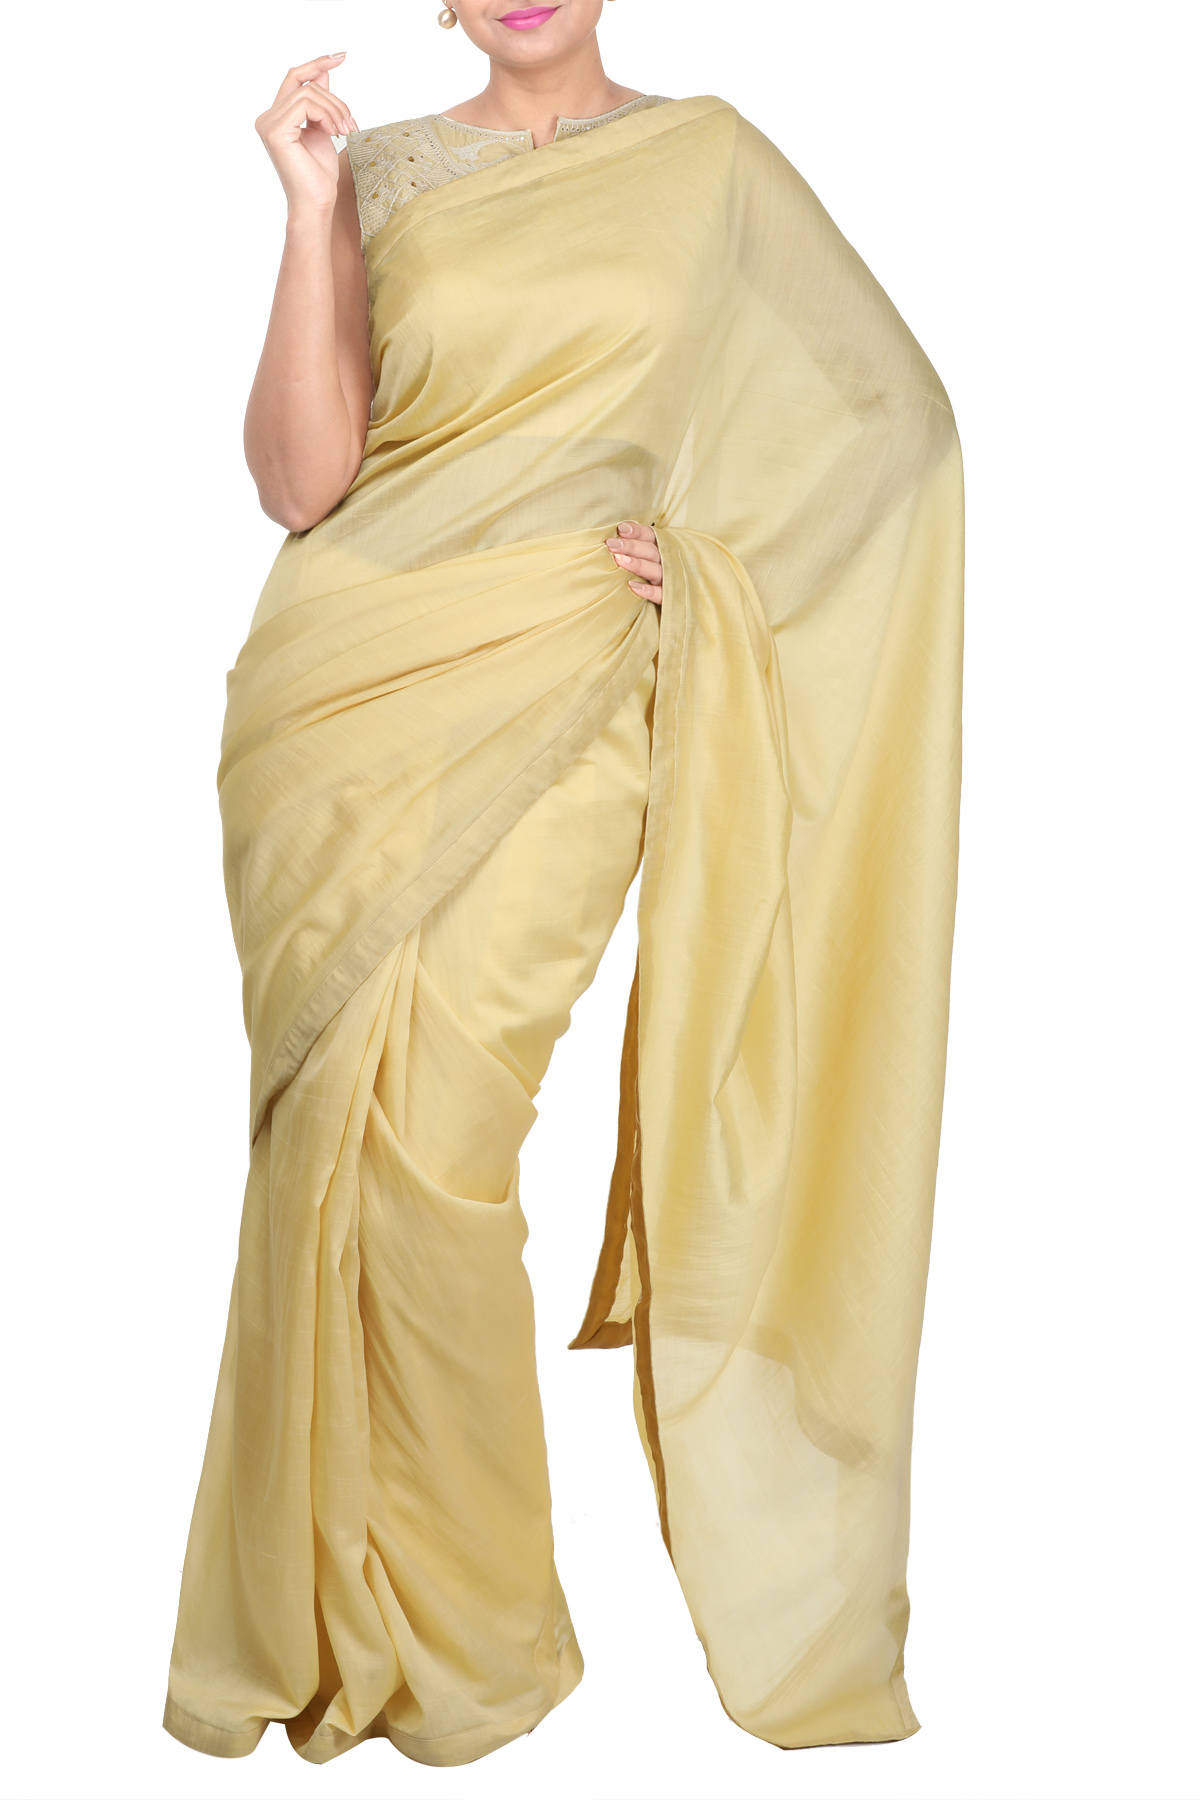 Beige Blouse With Gota Embroidery With Chanderi Saree